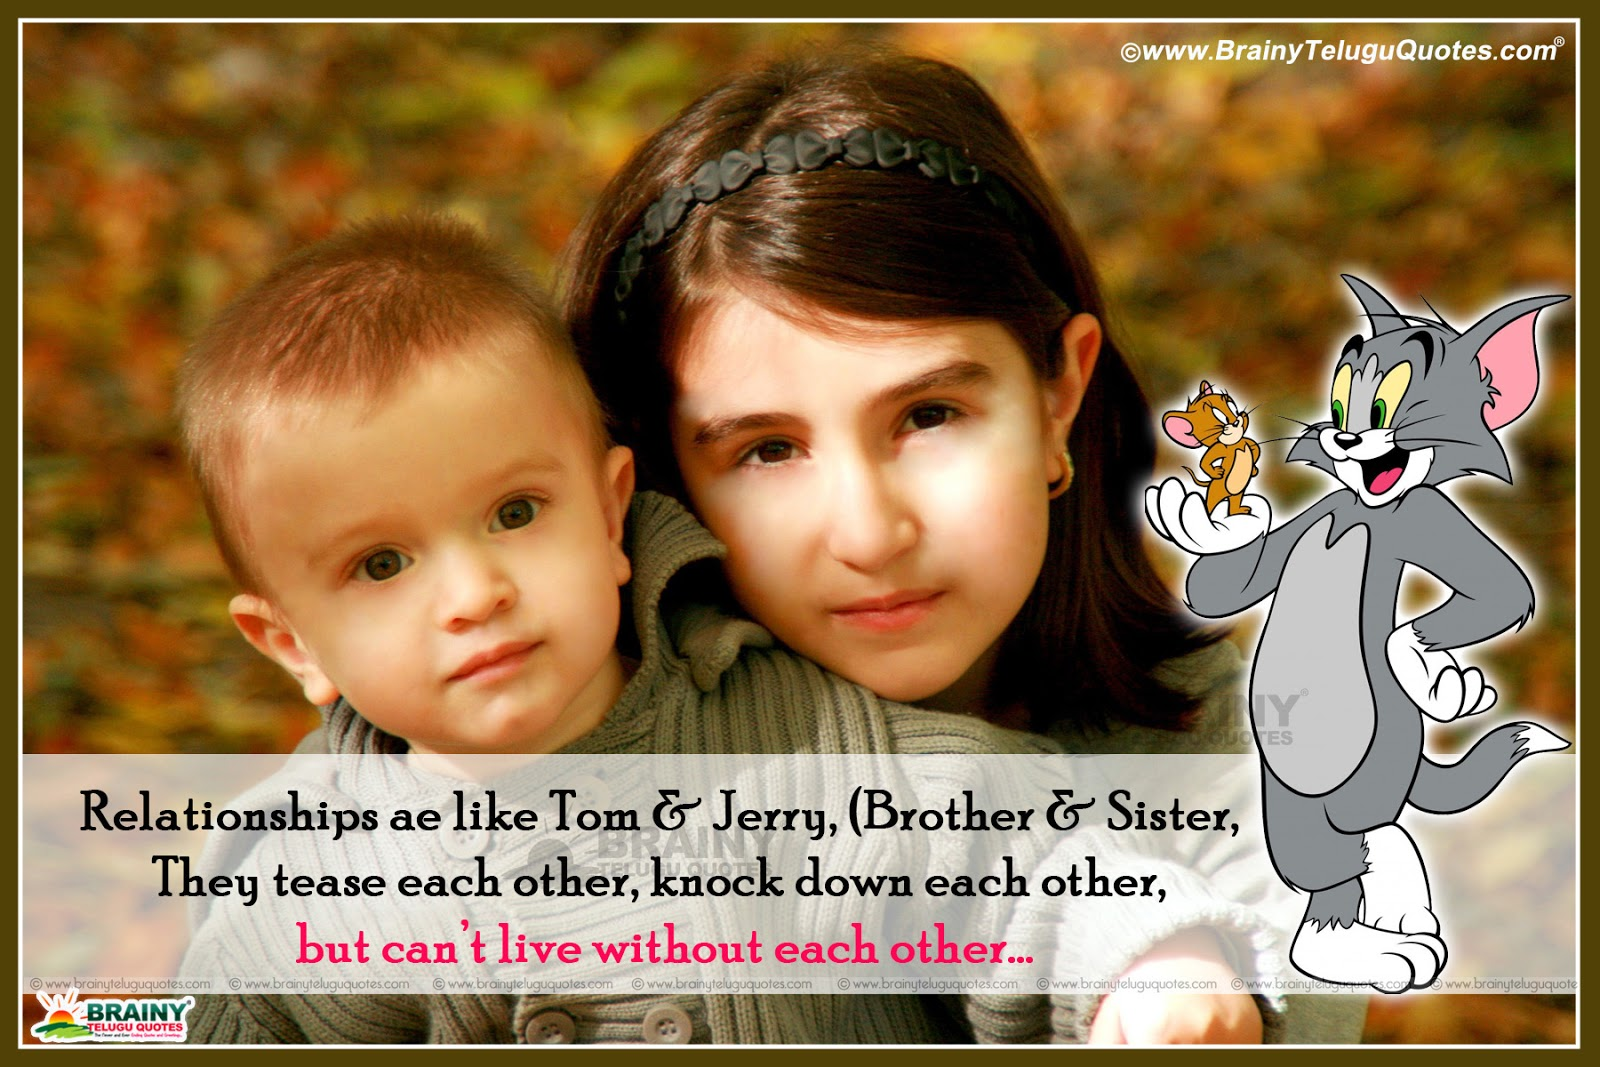 images on brother and sister relationship